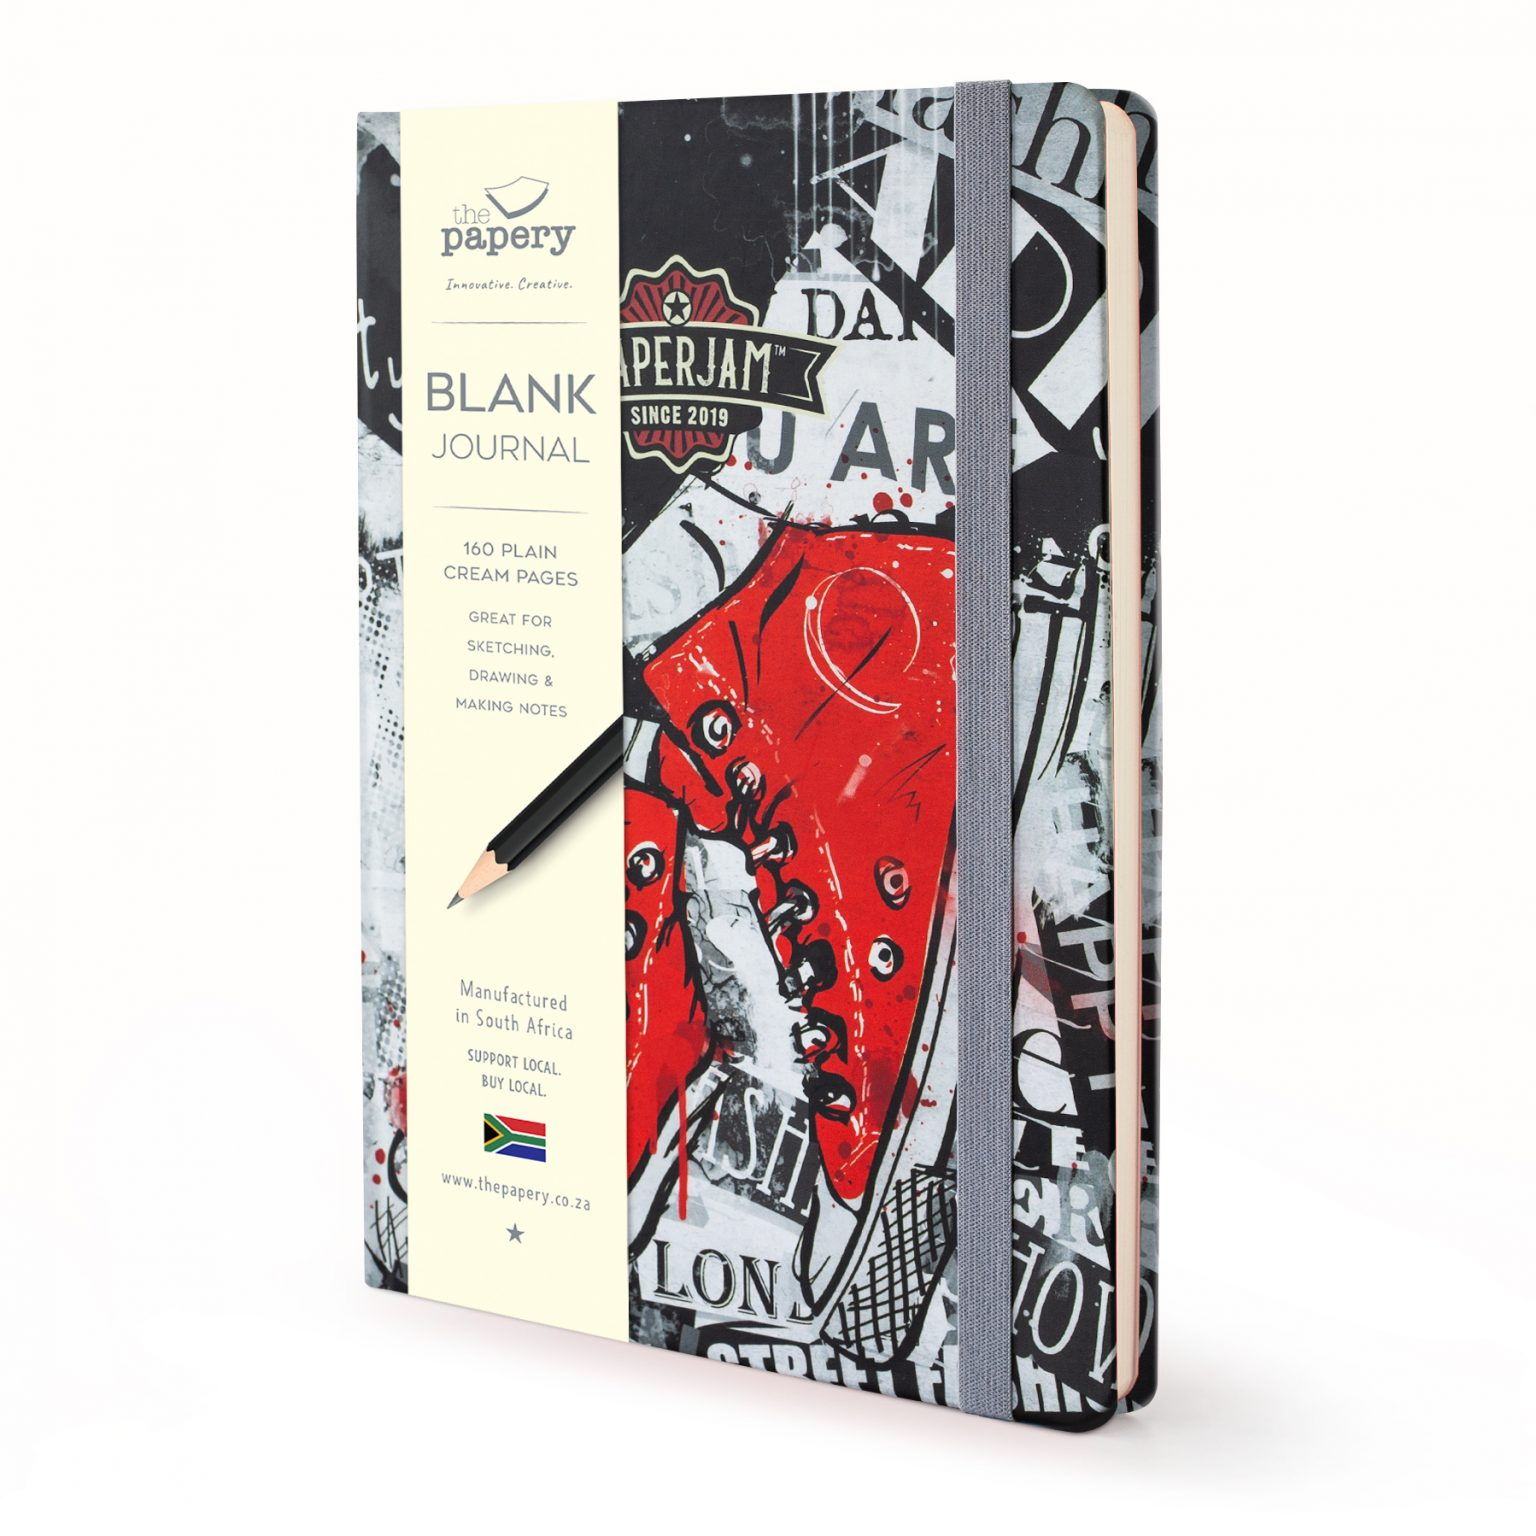 Image shows a retro hardcover journal with red sneakers